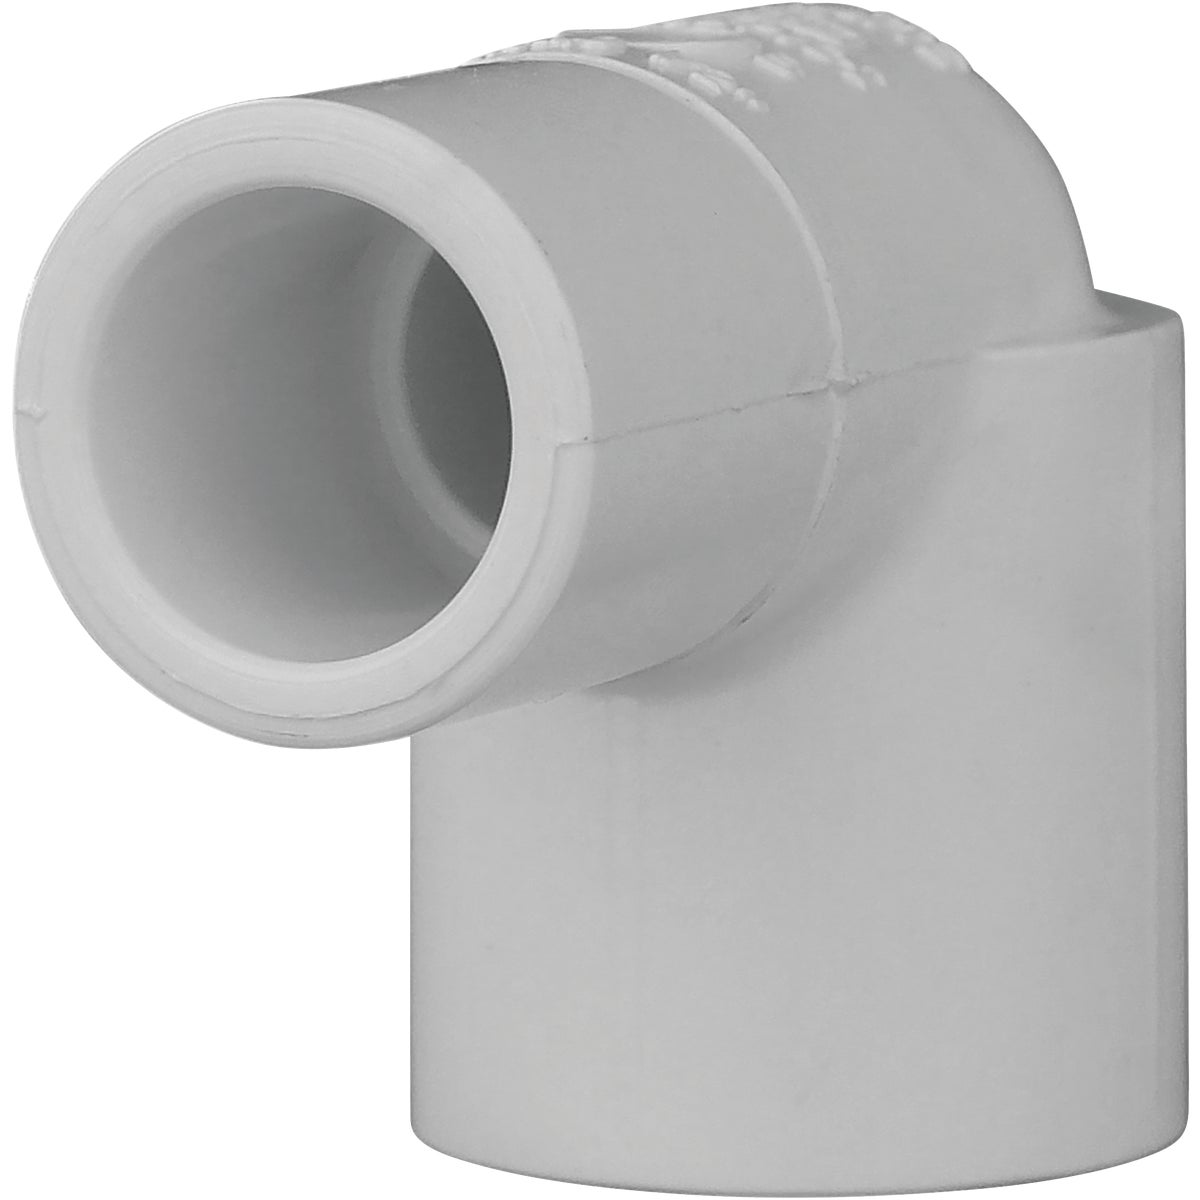 "1/2"" SXSP 90D STRT ELBOW - 32905 by Genova Inc"